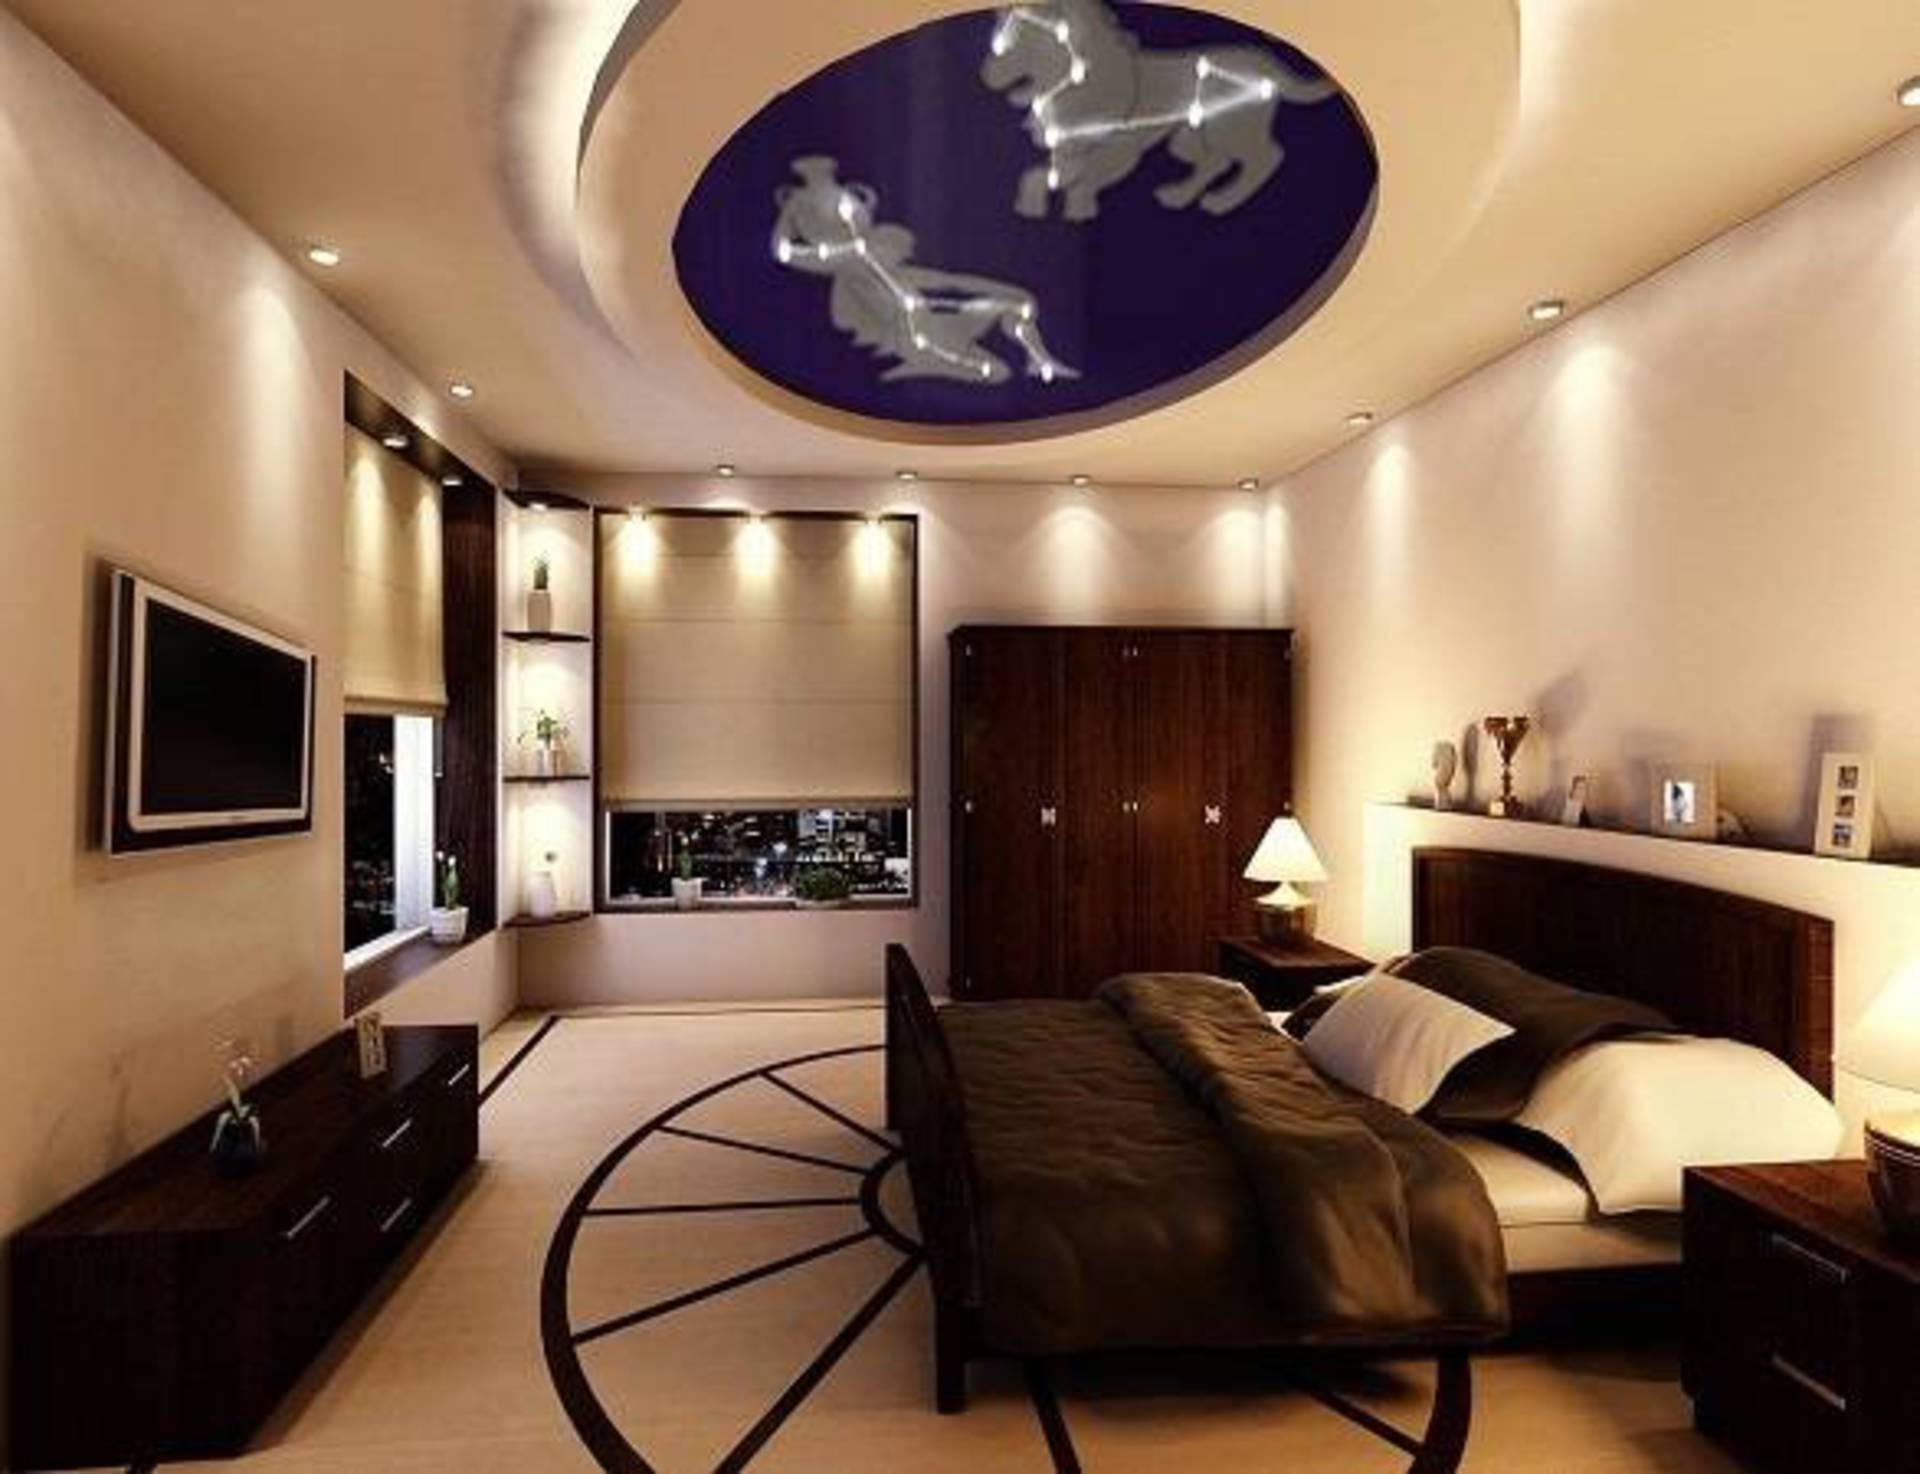 Cosmic elements in interior design home reviews for Interior decoration elements